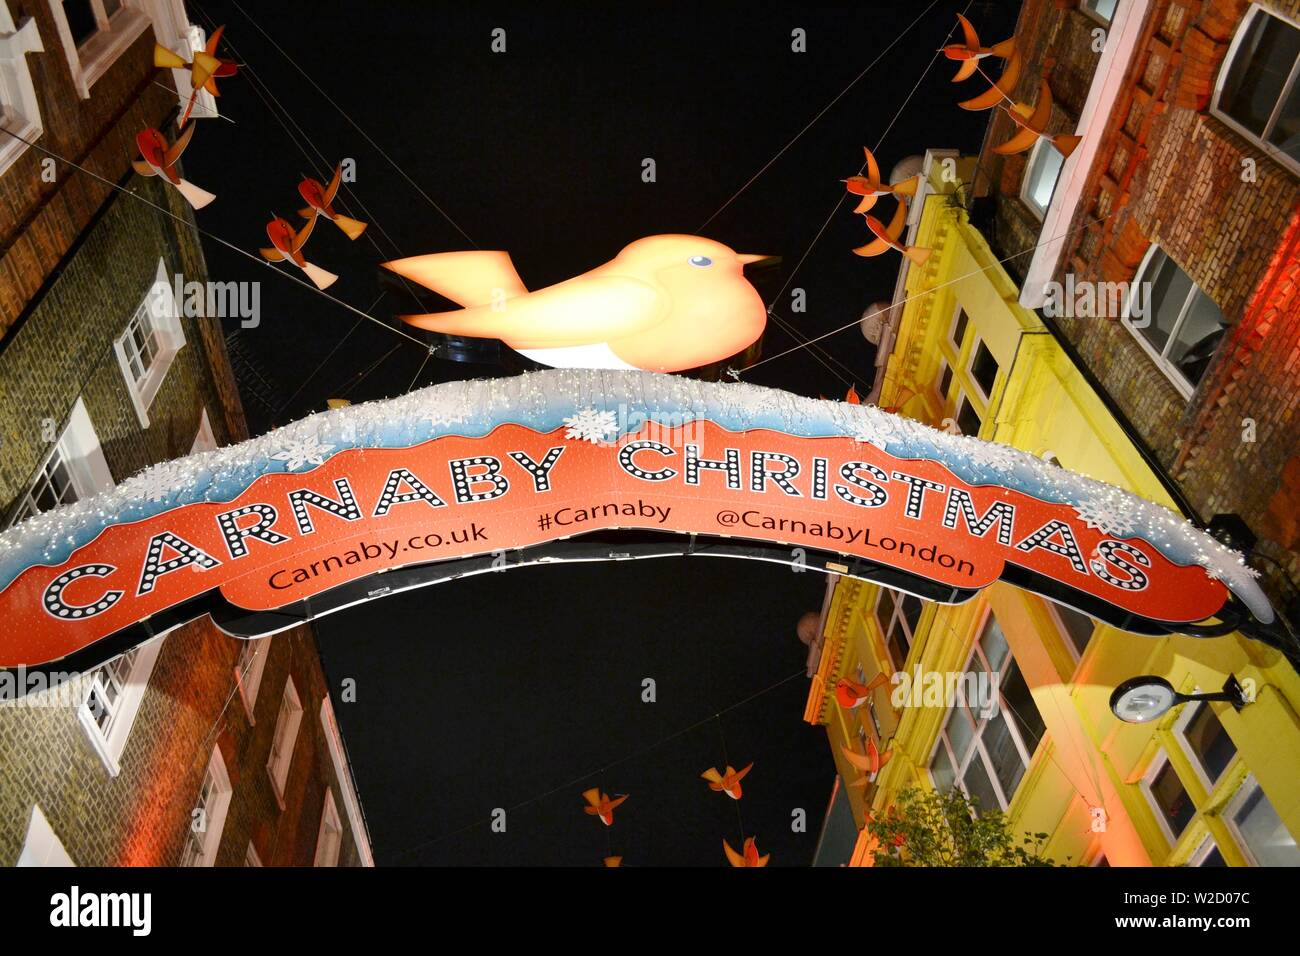 London/UK - November 28, 2013: Carnaby street in London decorated for Christmas with red banners and birds, making the perception more happy. Stock Photo